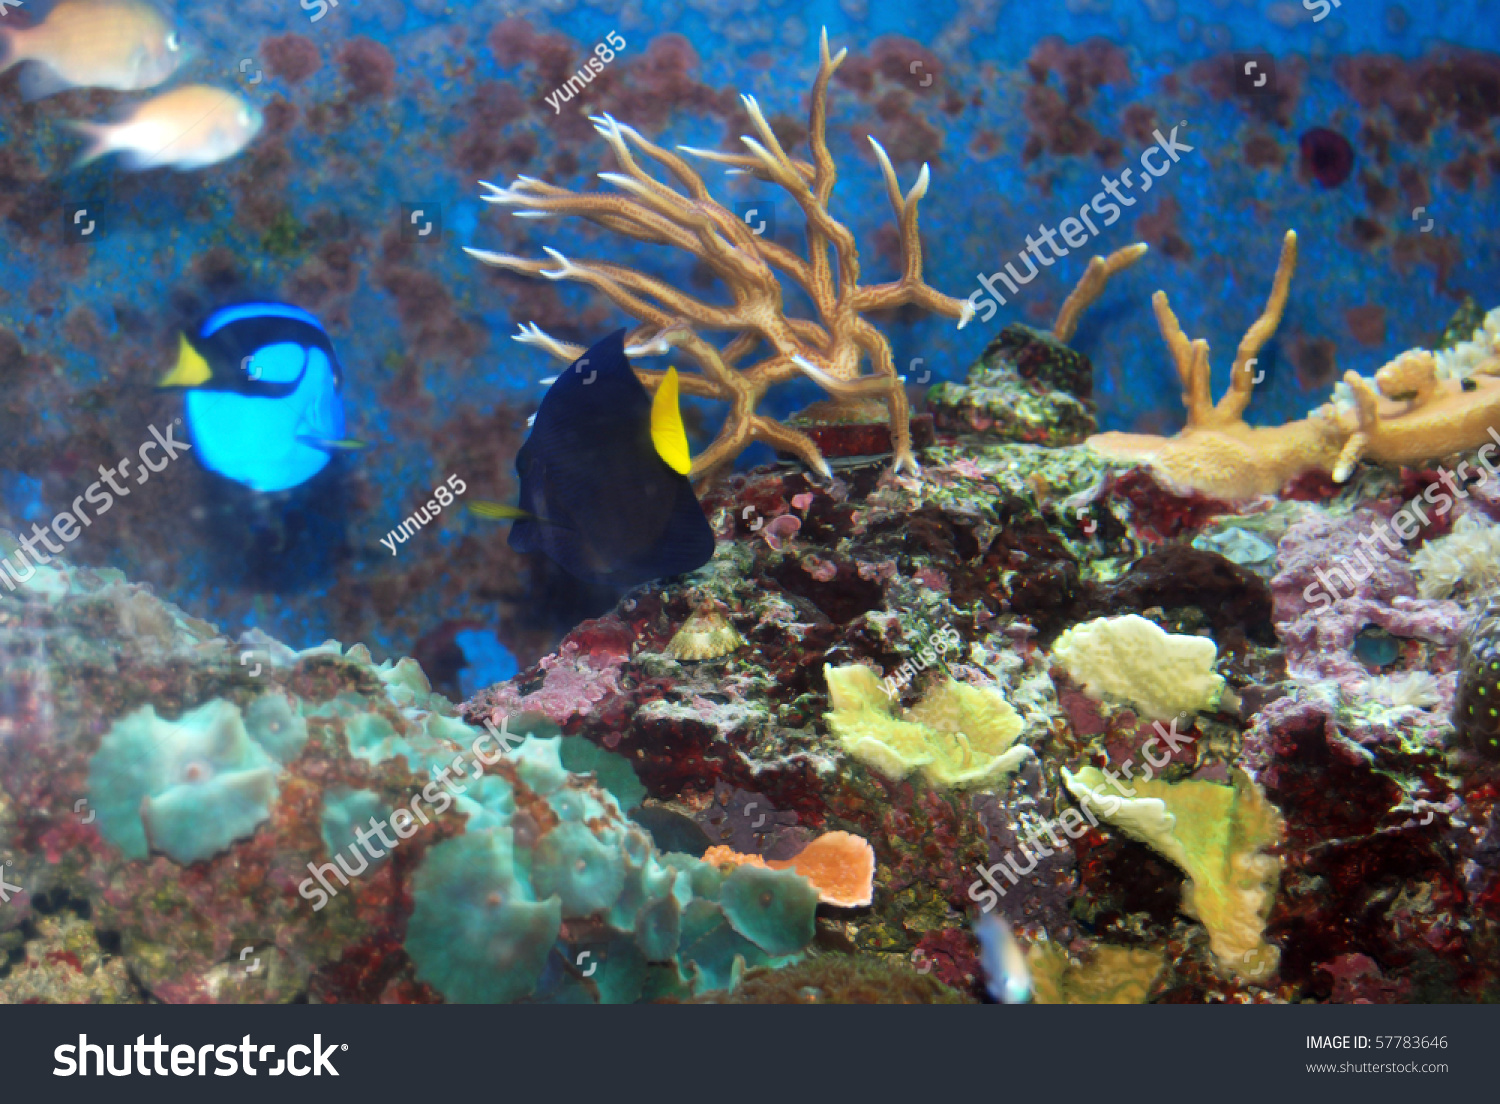 Plate coral stock photo 57783646 shutterstock for Fish plates near me